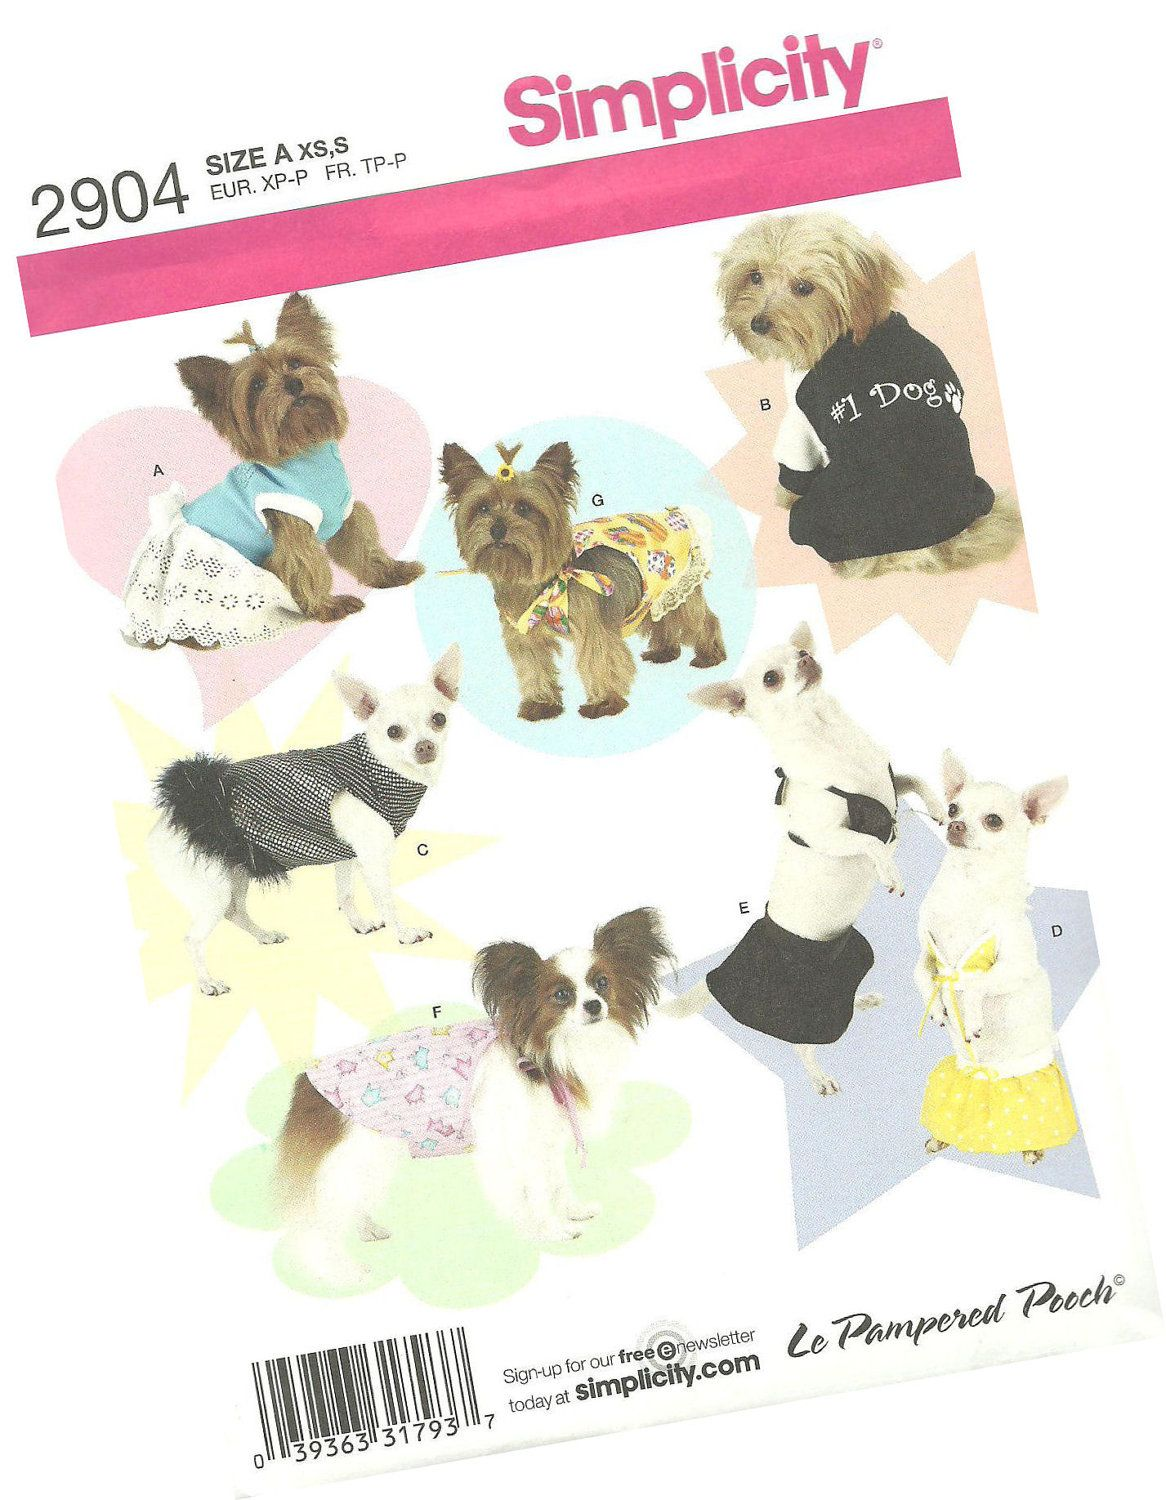 Sewing patterns for apparel, home decor and crafts, and notions ...